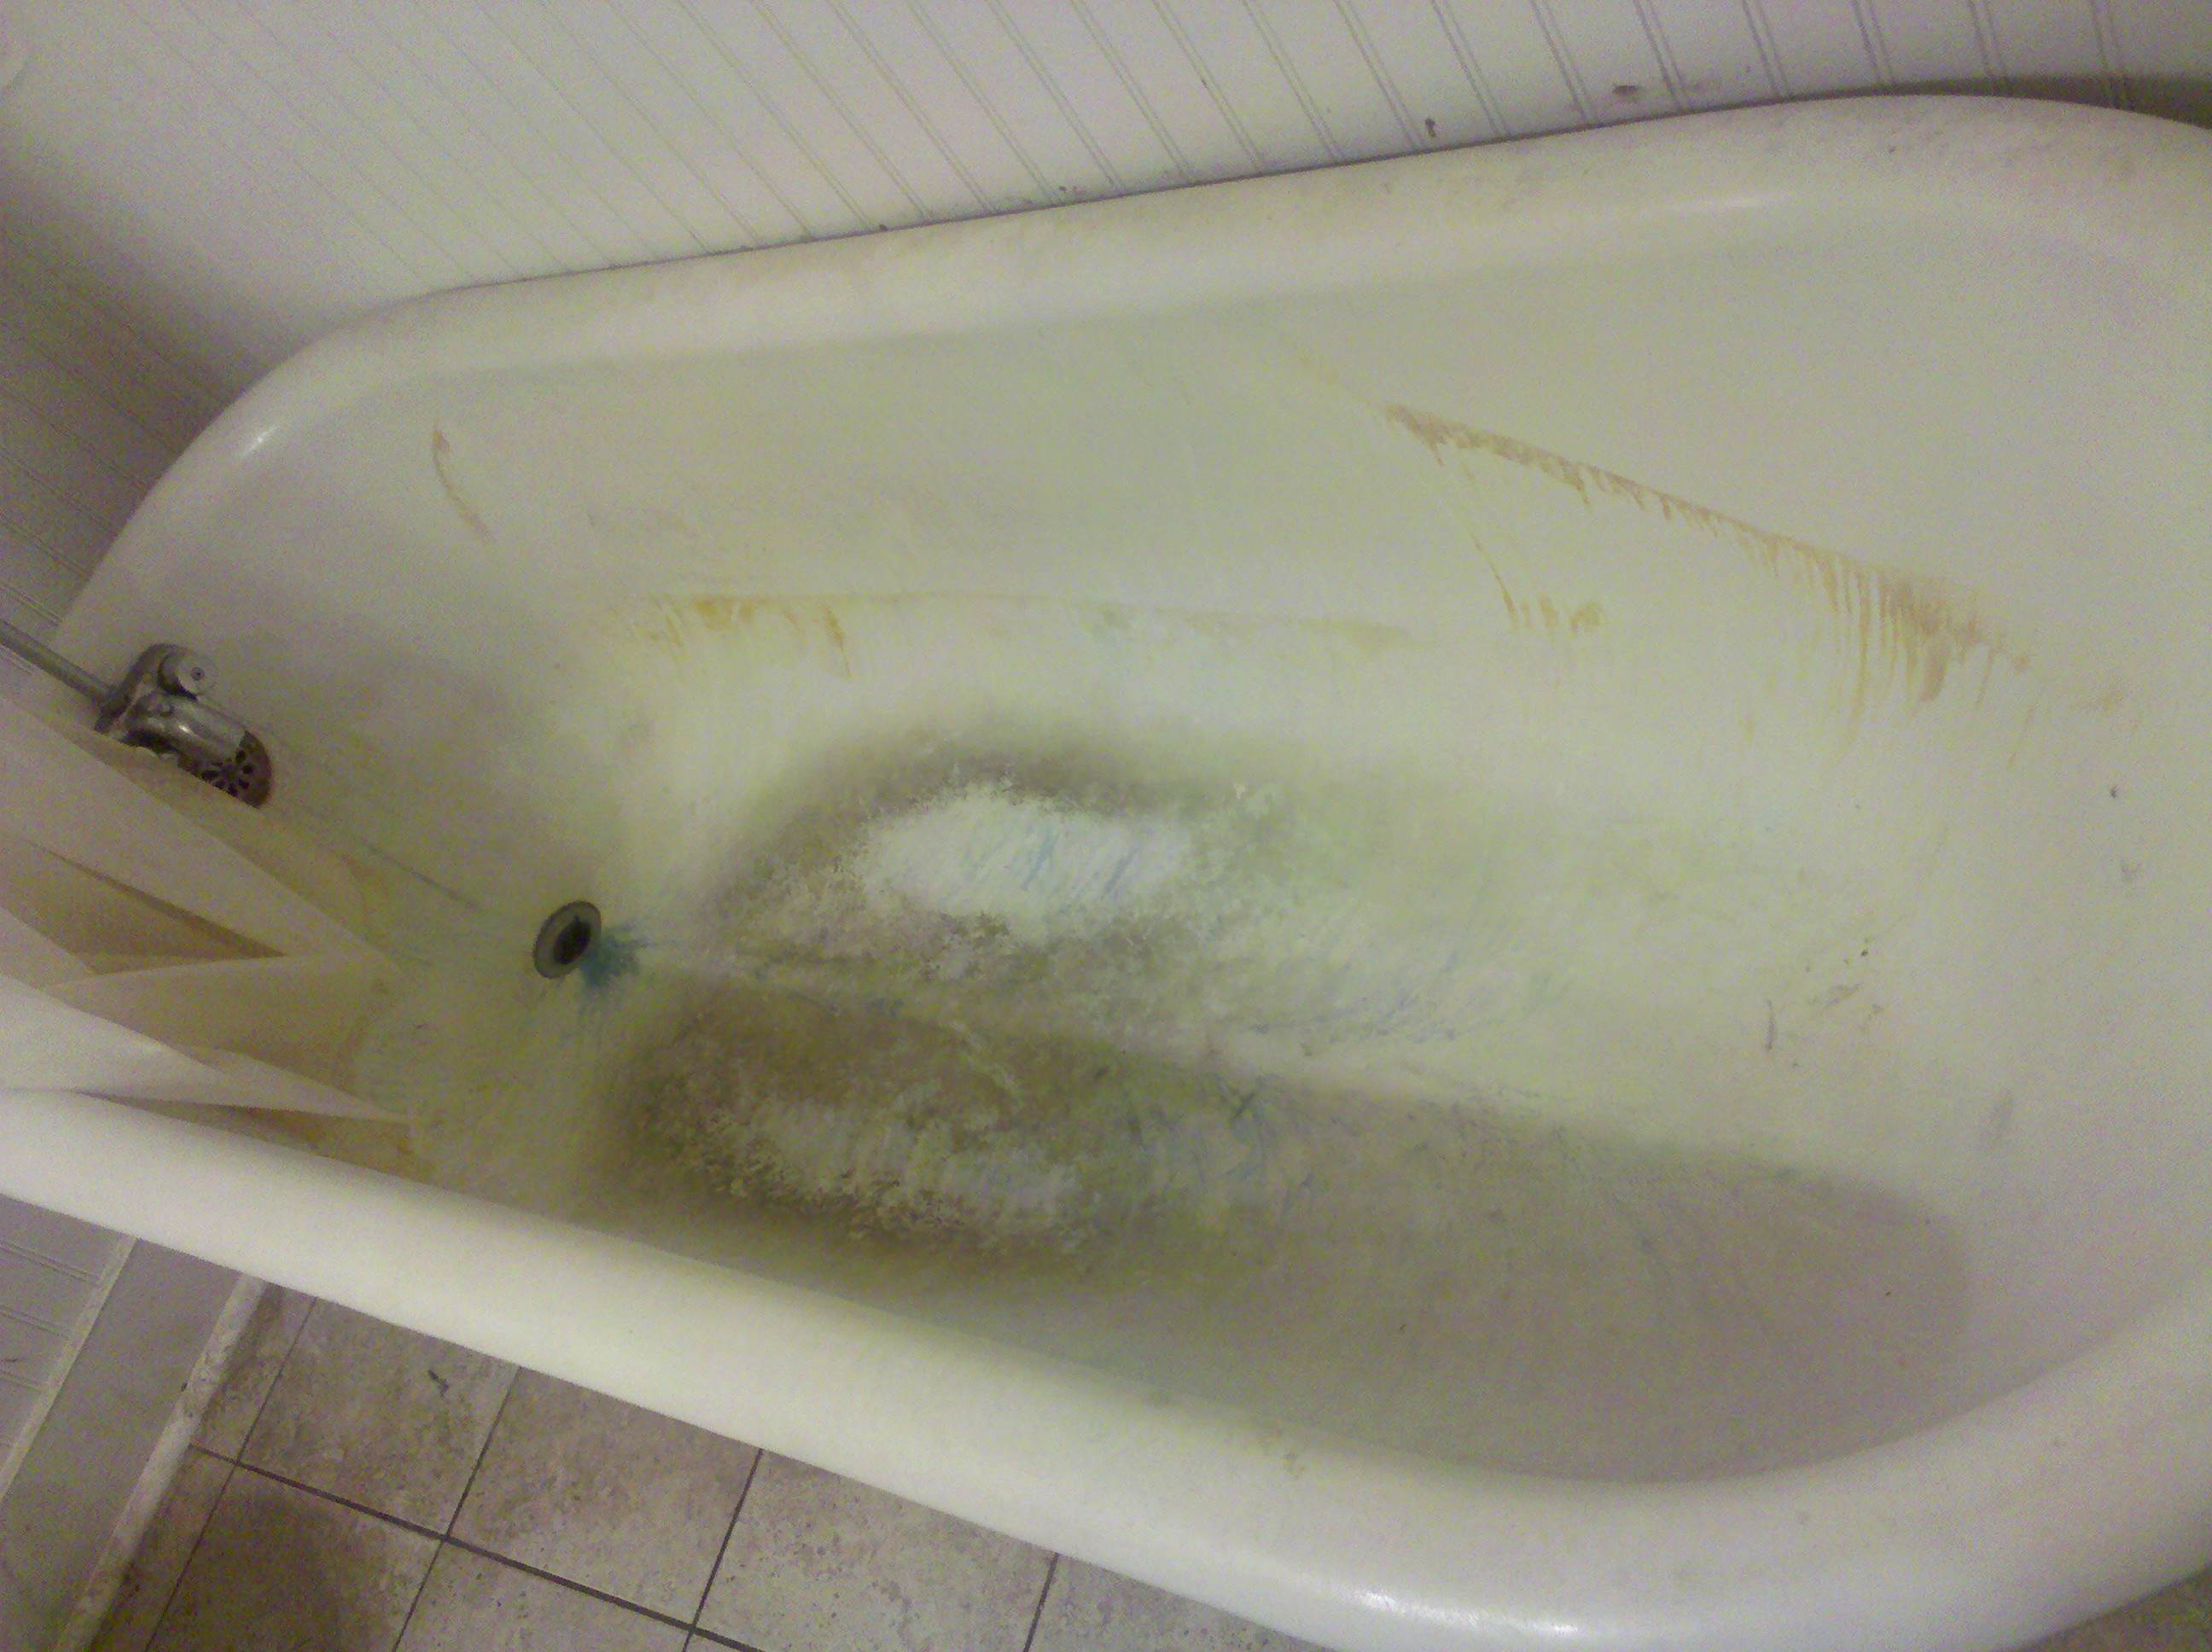 Worst bathtub - 2014